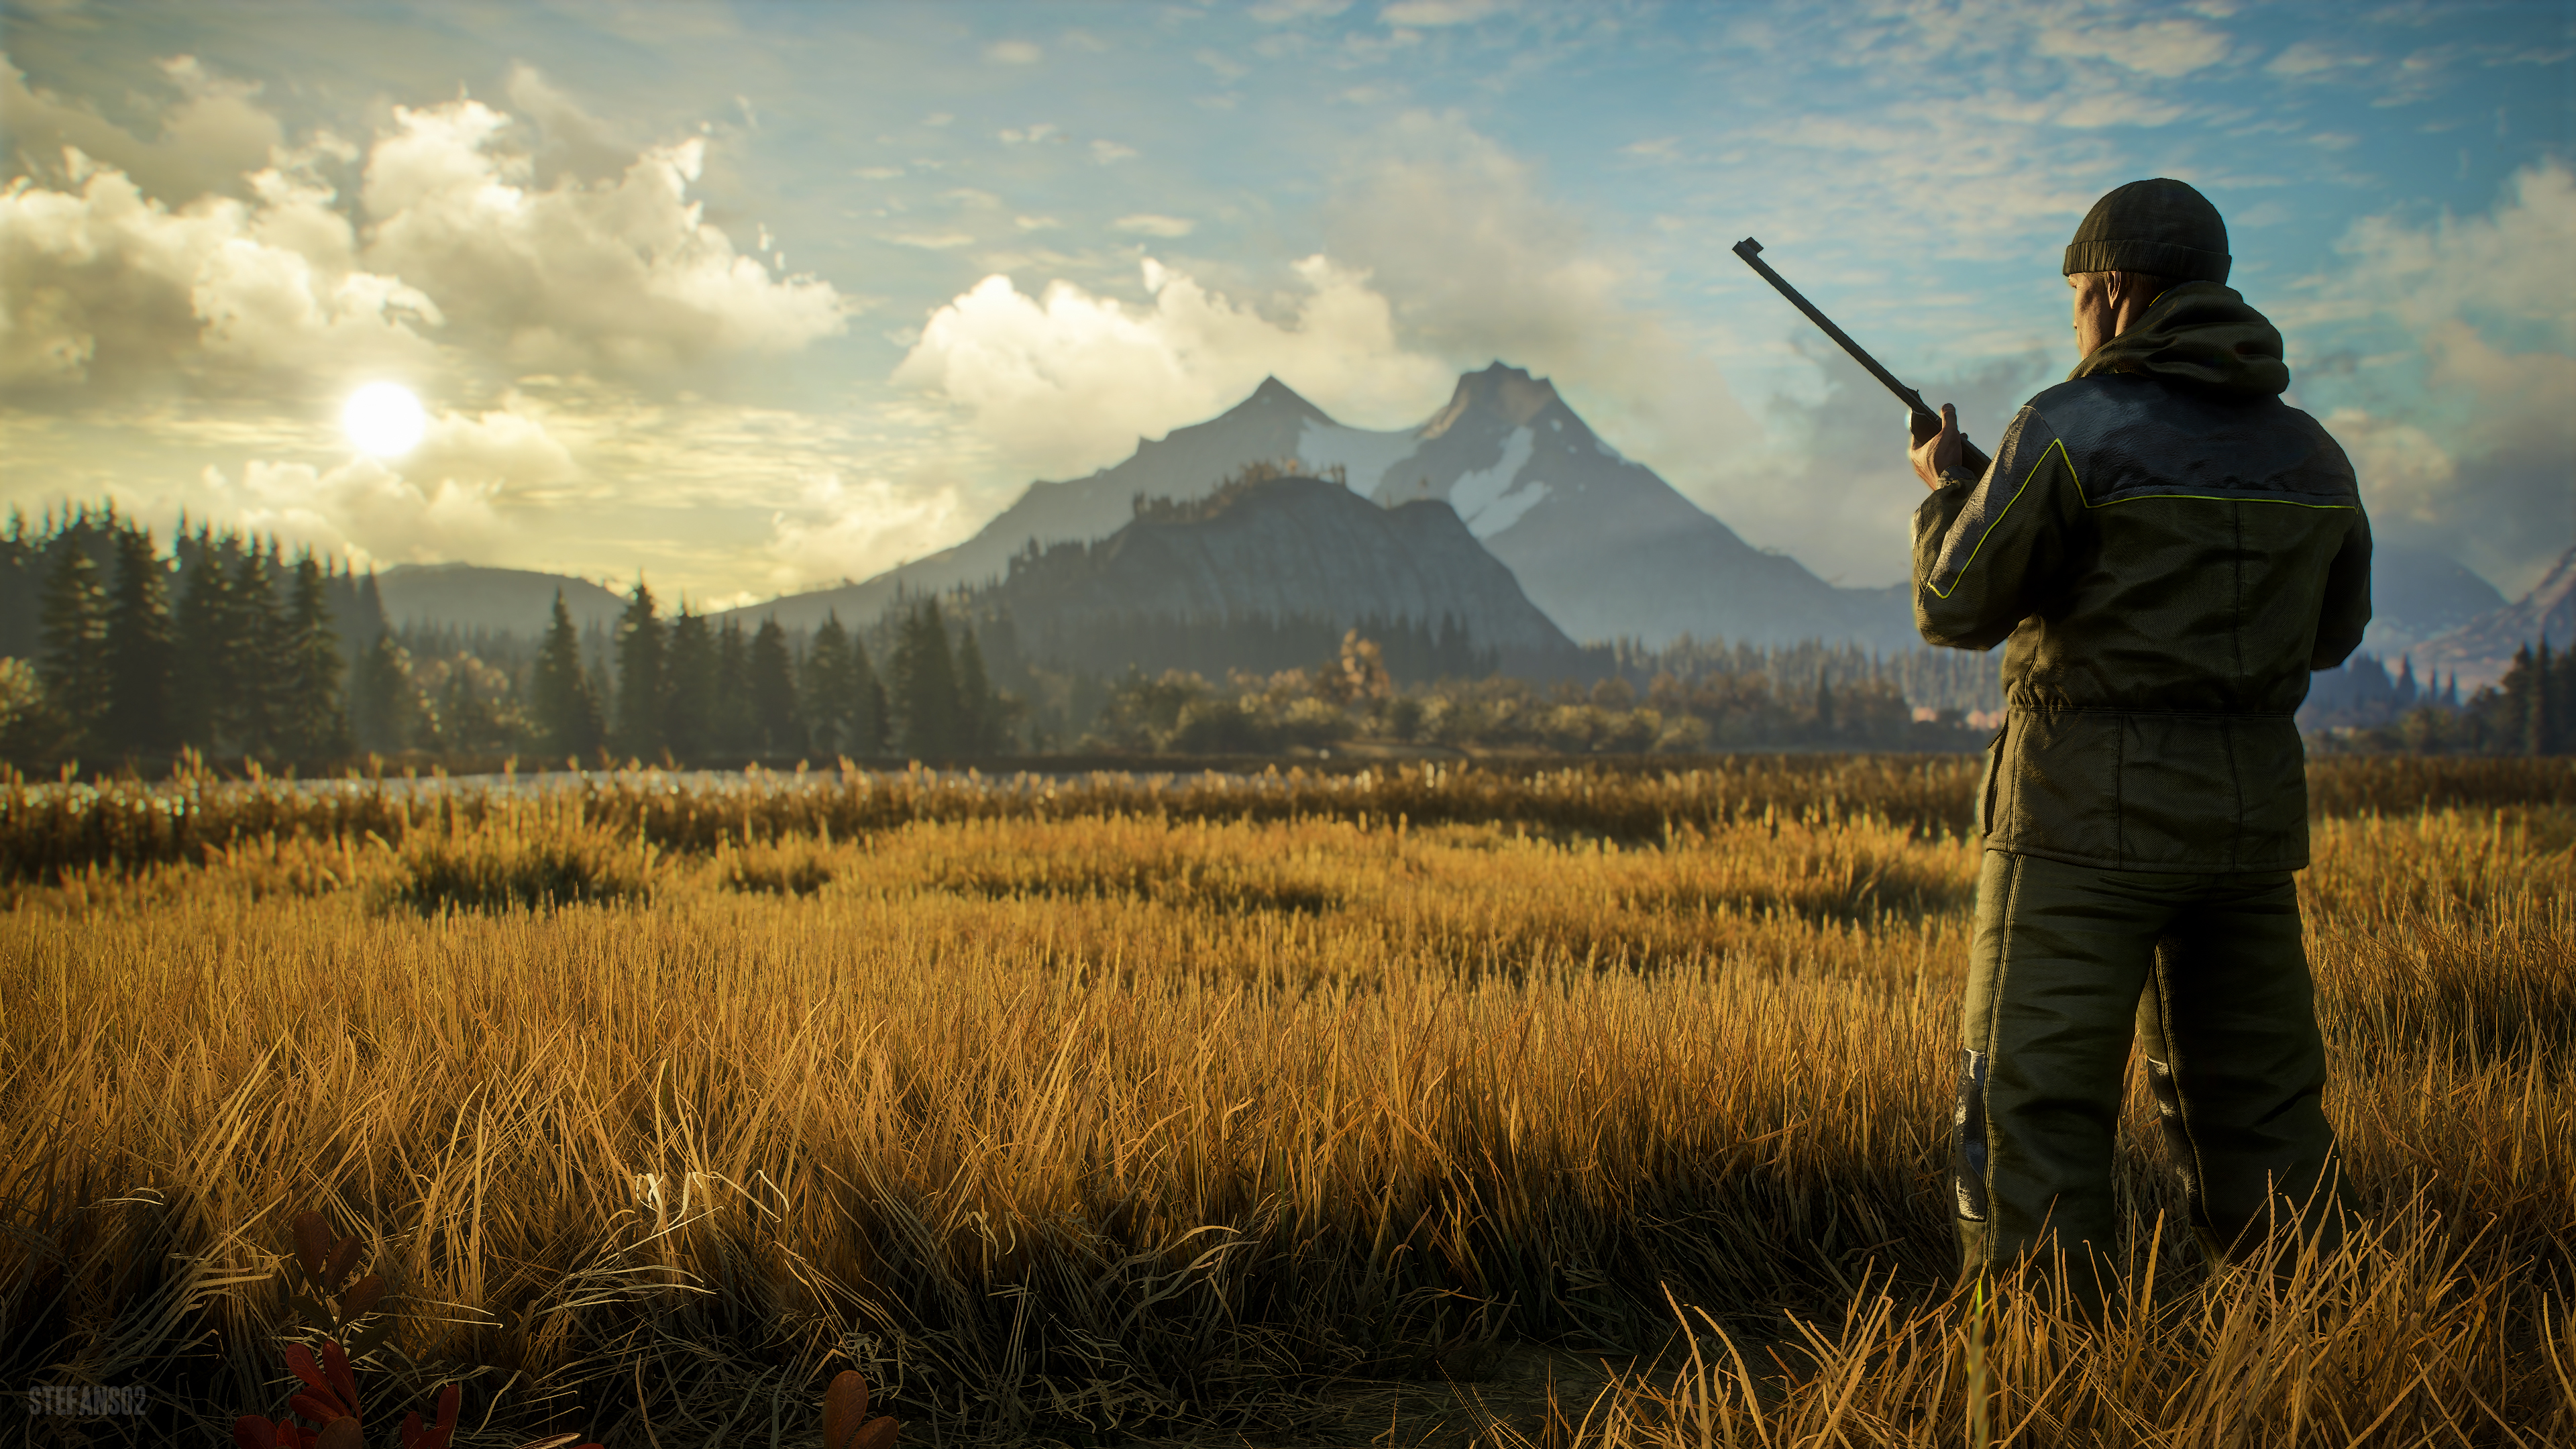 TheHunter: Call Of The Wild Wallpapers, Pictures, Images